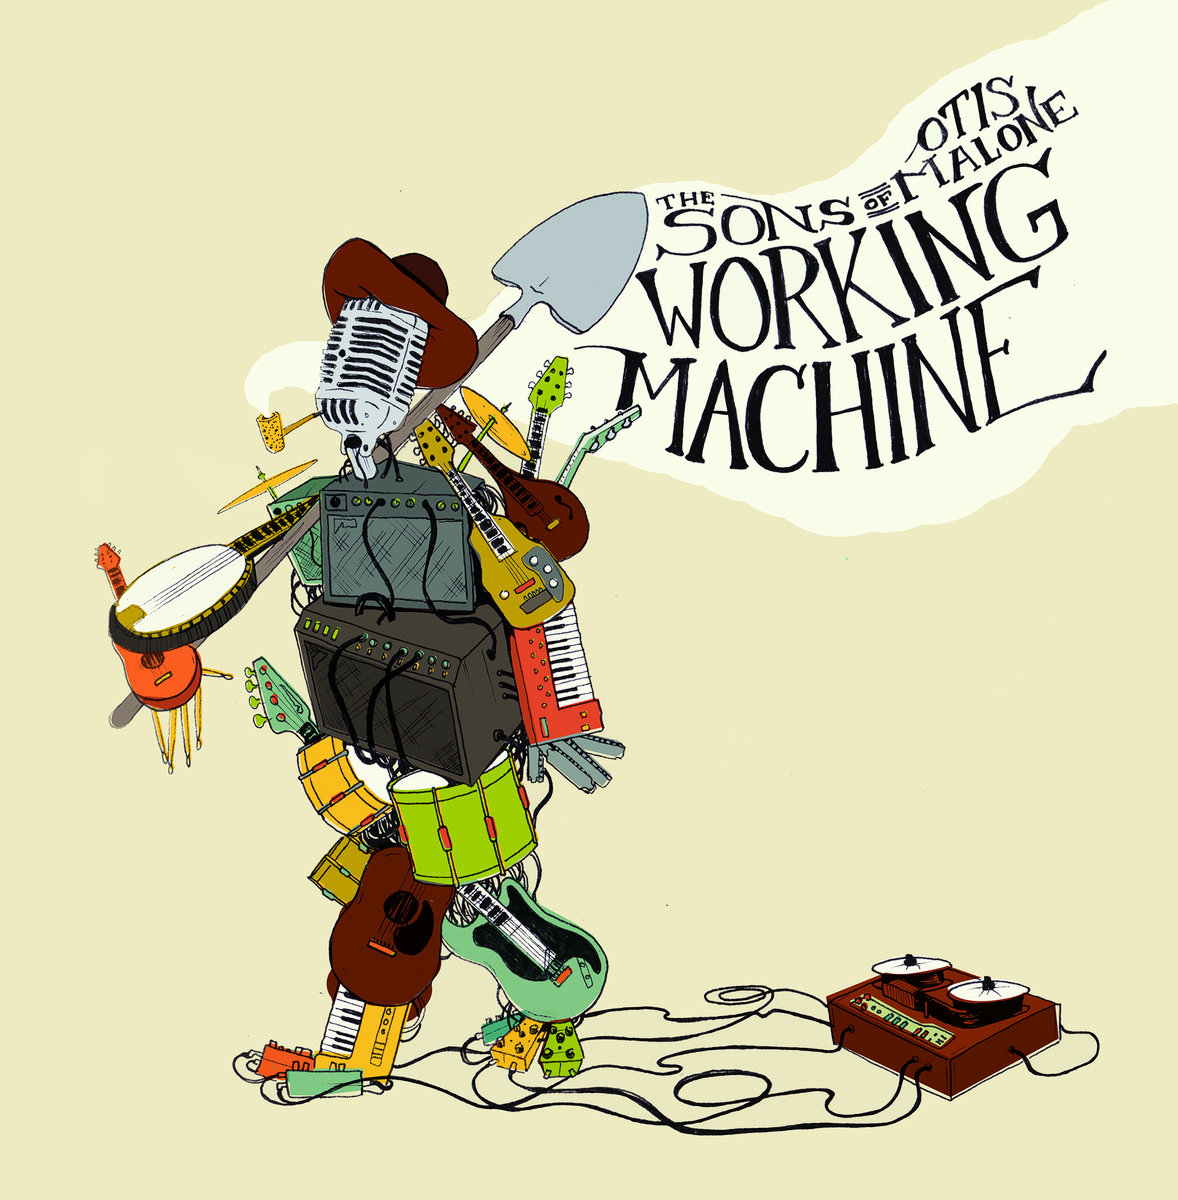 working machine, the sons of otis malone.jpg